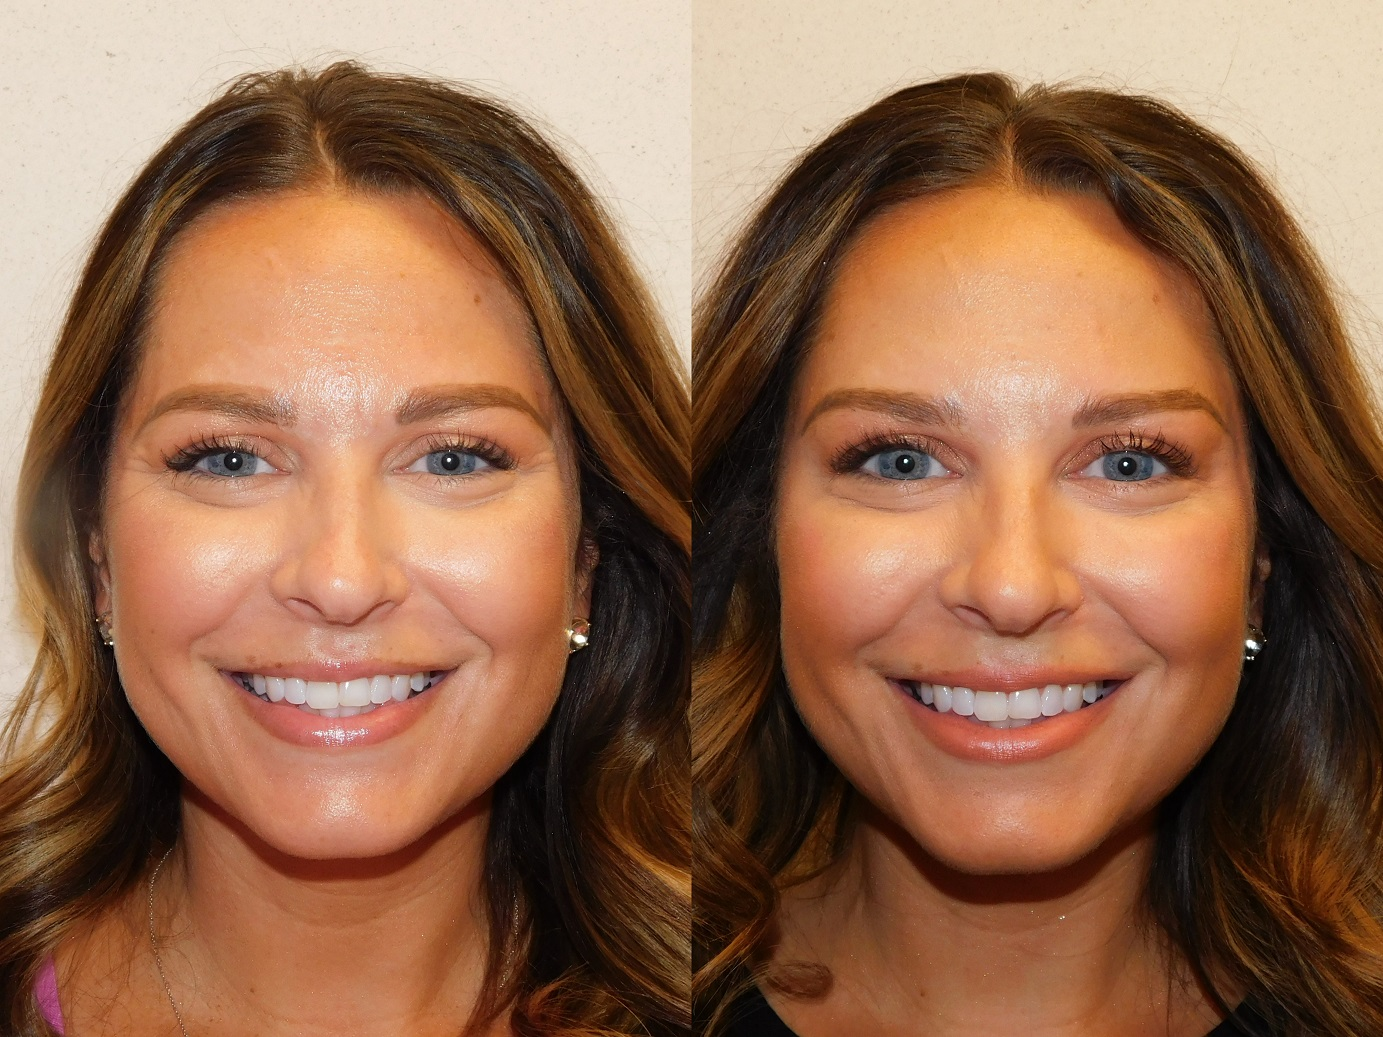 Botox results-Jeuveau-#NEWTOX-Dr. Joel Schlessinger-LovelySkin Omaha-Omaha Blogger-Omaha Beauty Blogger-Beauty Blog Post-Botox Results-Sabby Style-7